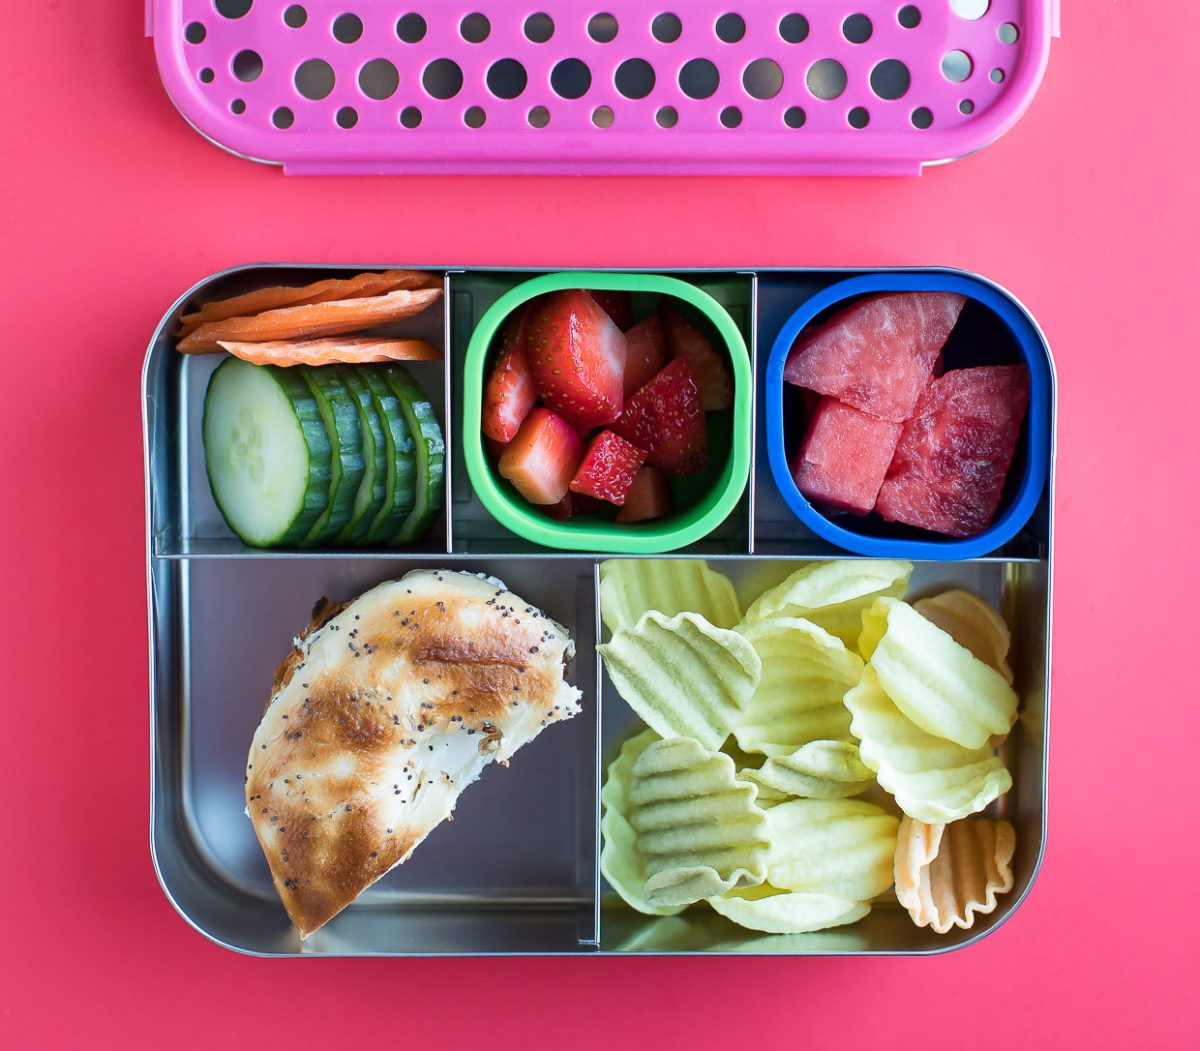 Bento Box Lunch with Fruit, Bagel, and Veggie Straws